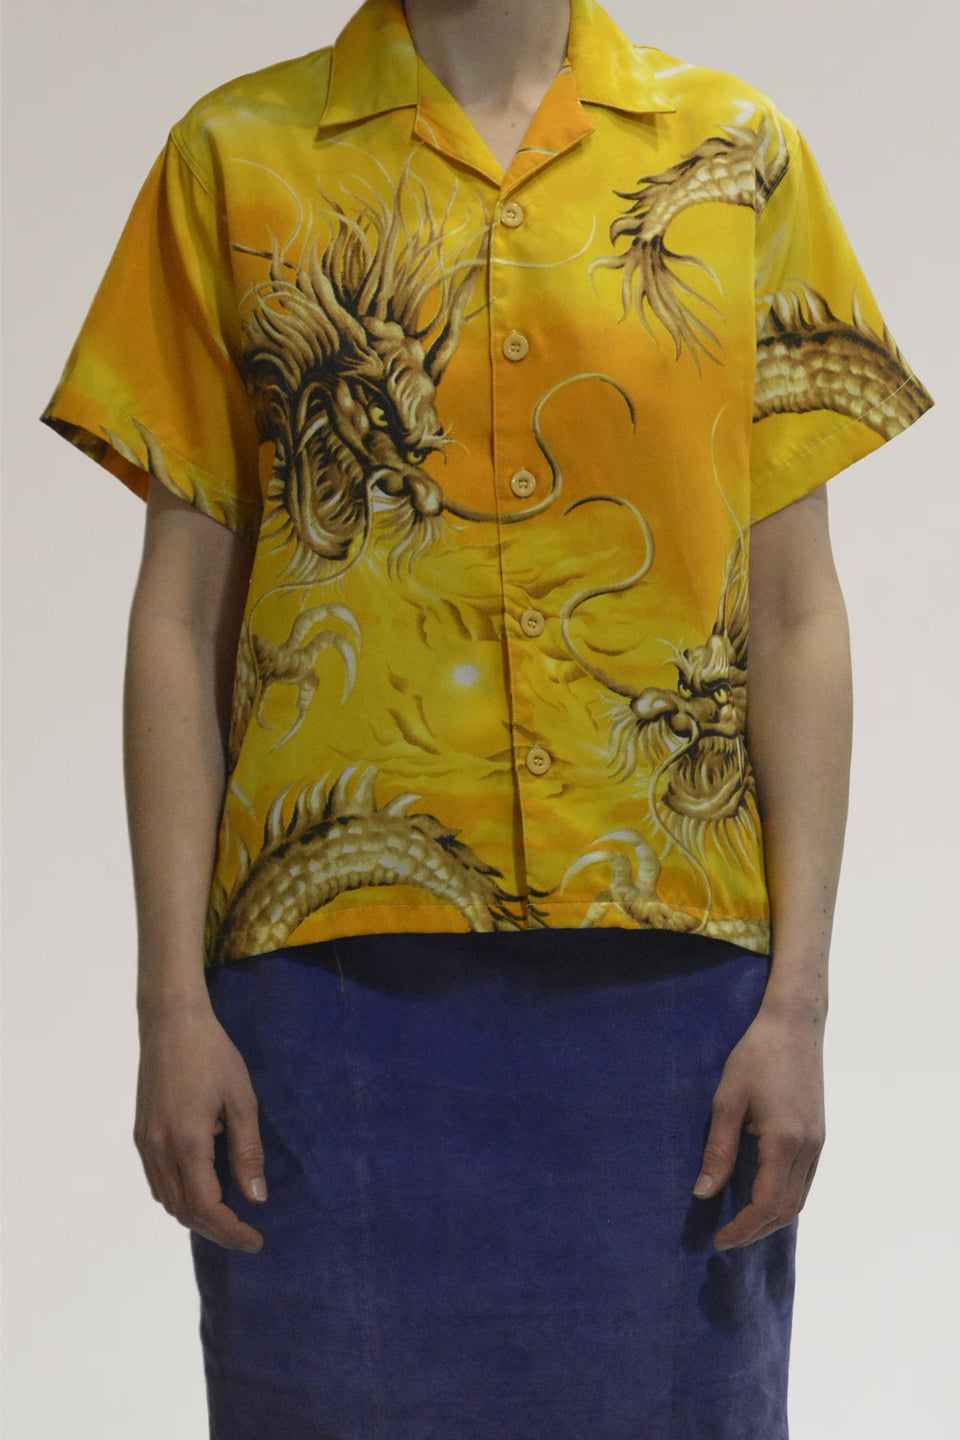 00s dragon print shirt